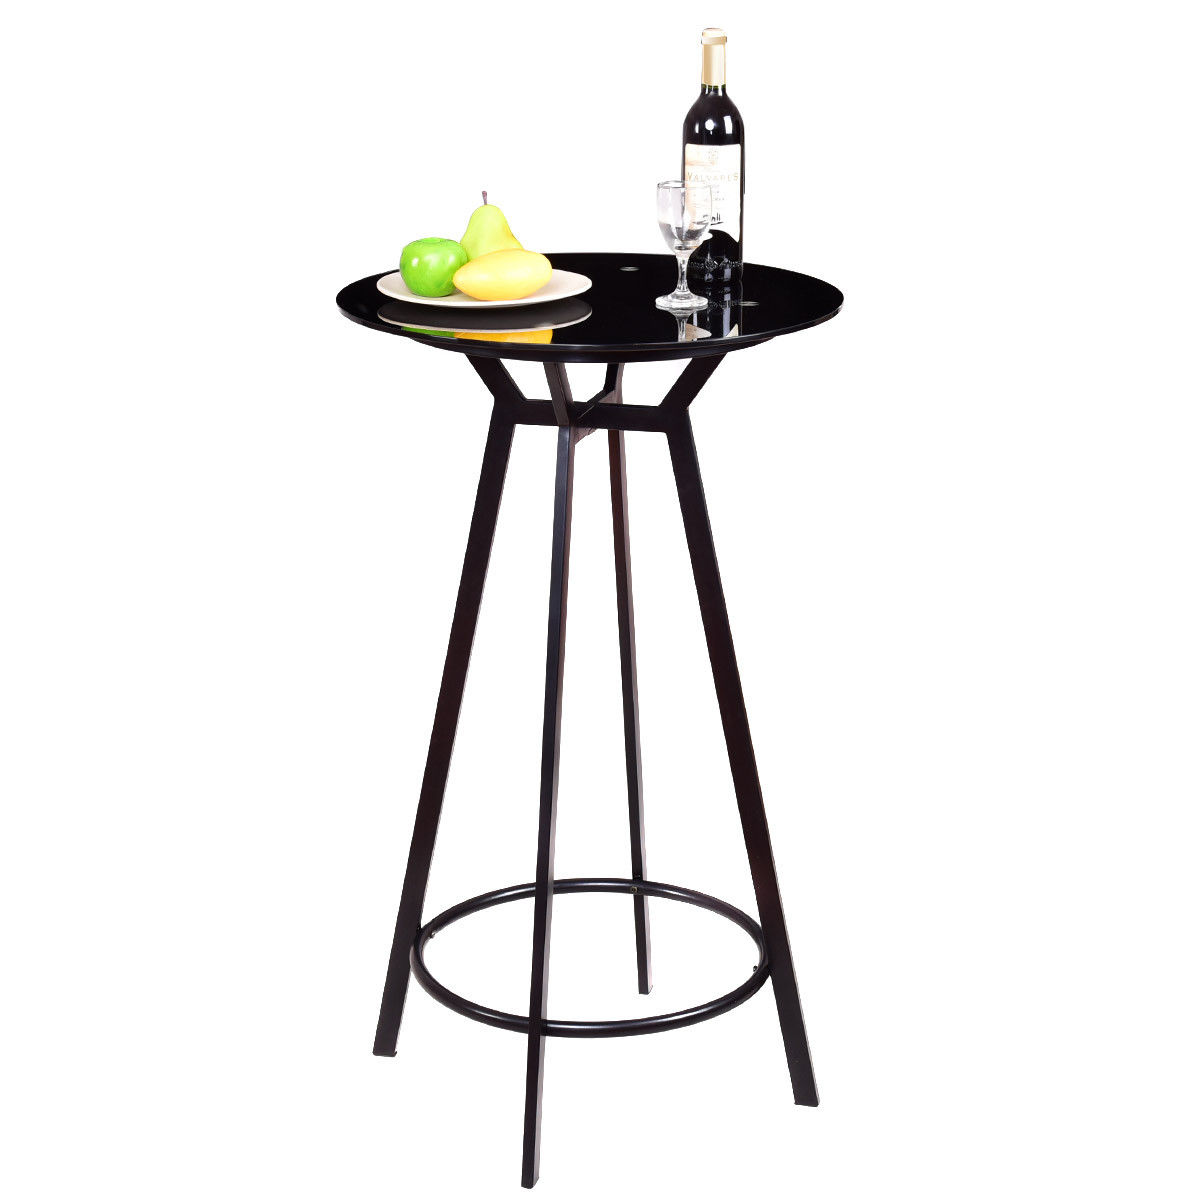 Costway Modern Round Pub Table Glass Top Metal Frame Bar Bistro Pub Furniture Black by Costway